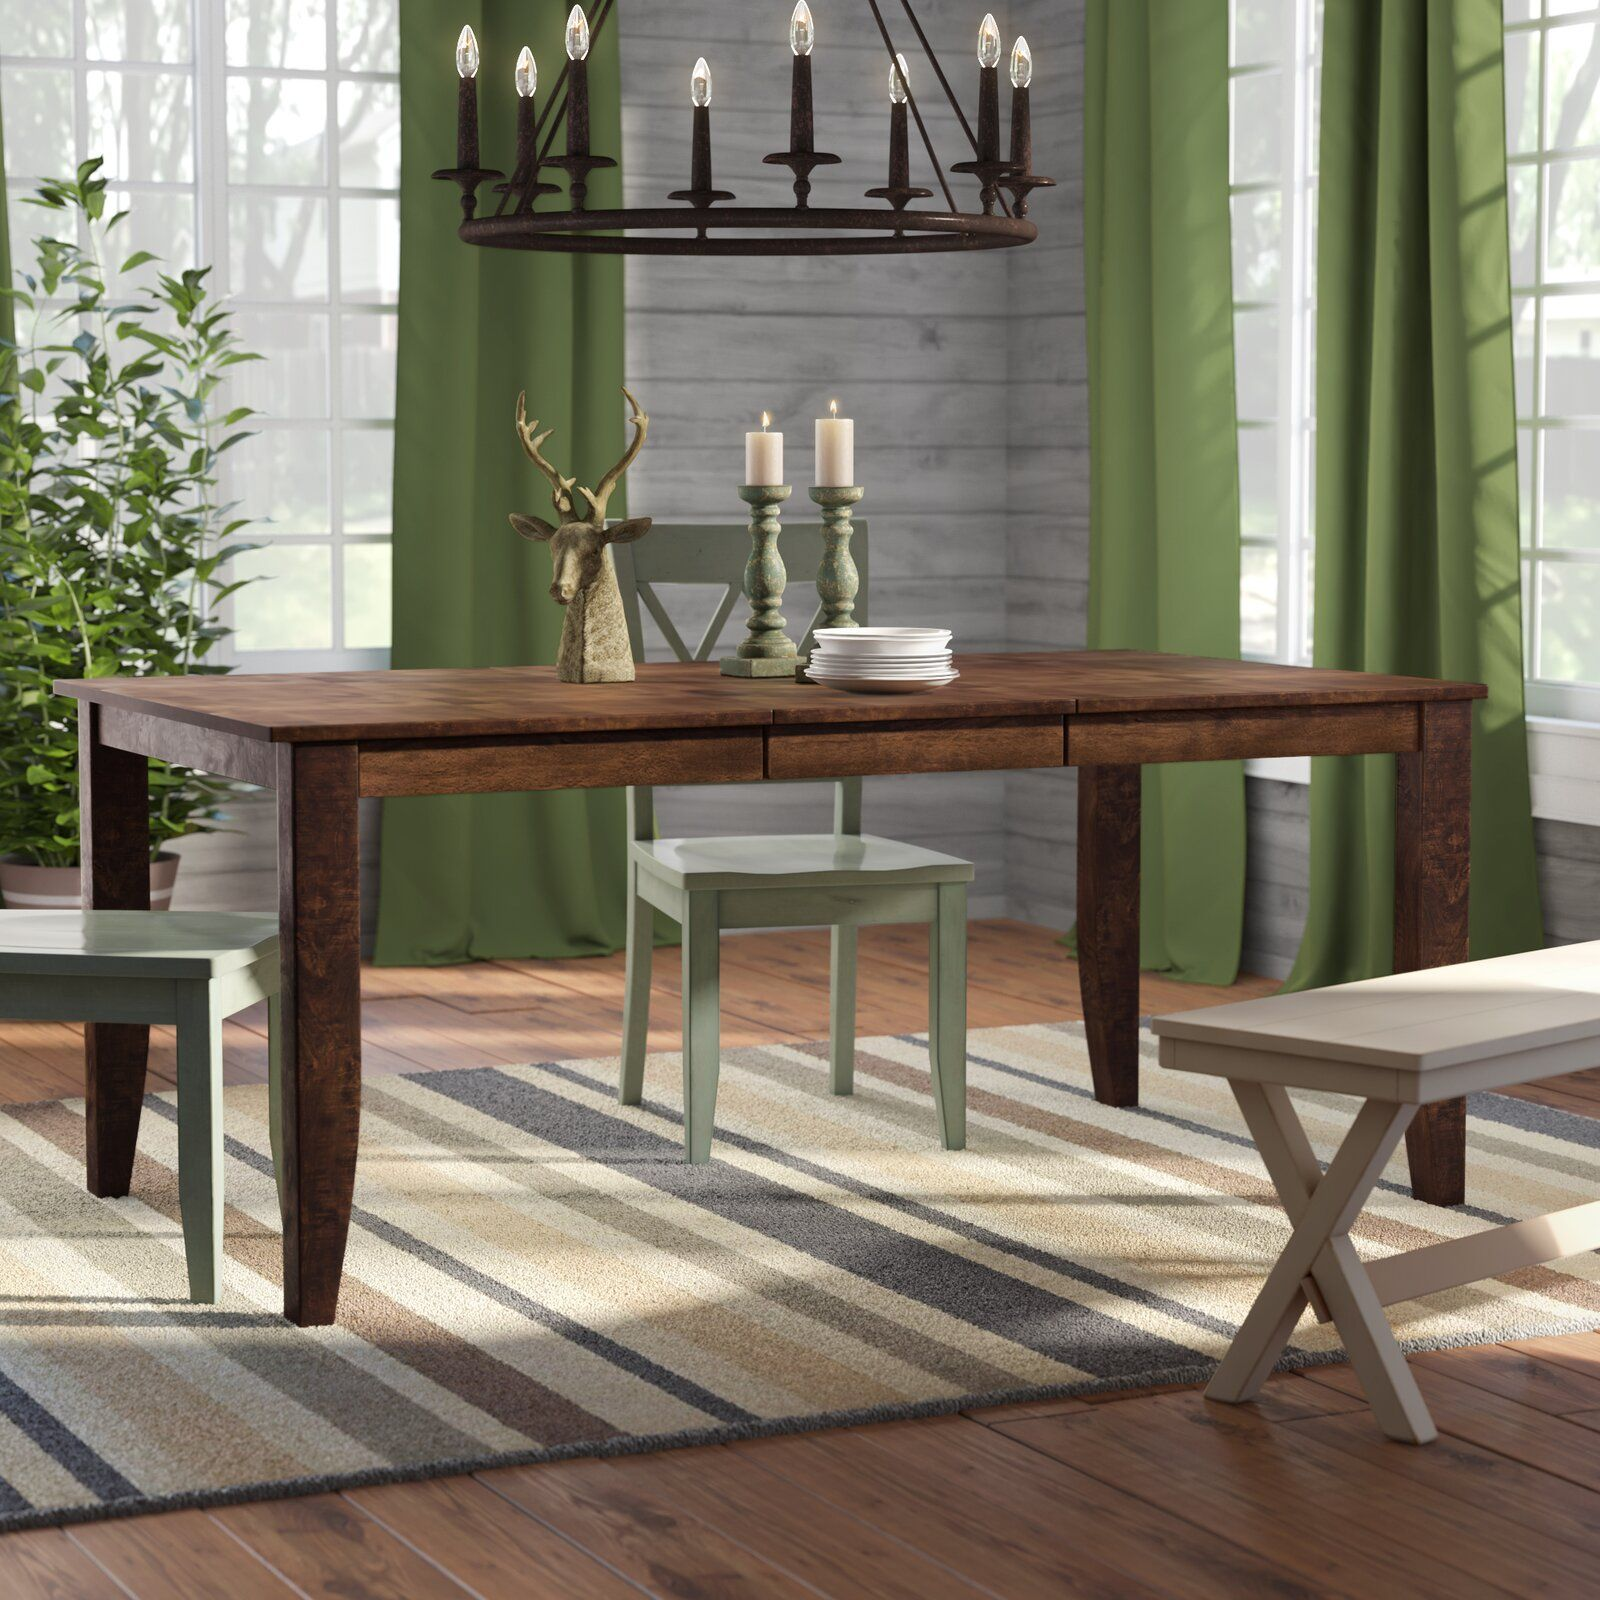 Caracara Leg Extendable Dining Table In 2020 Dining Table